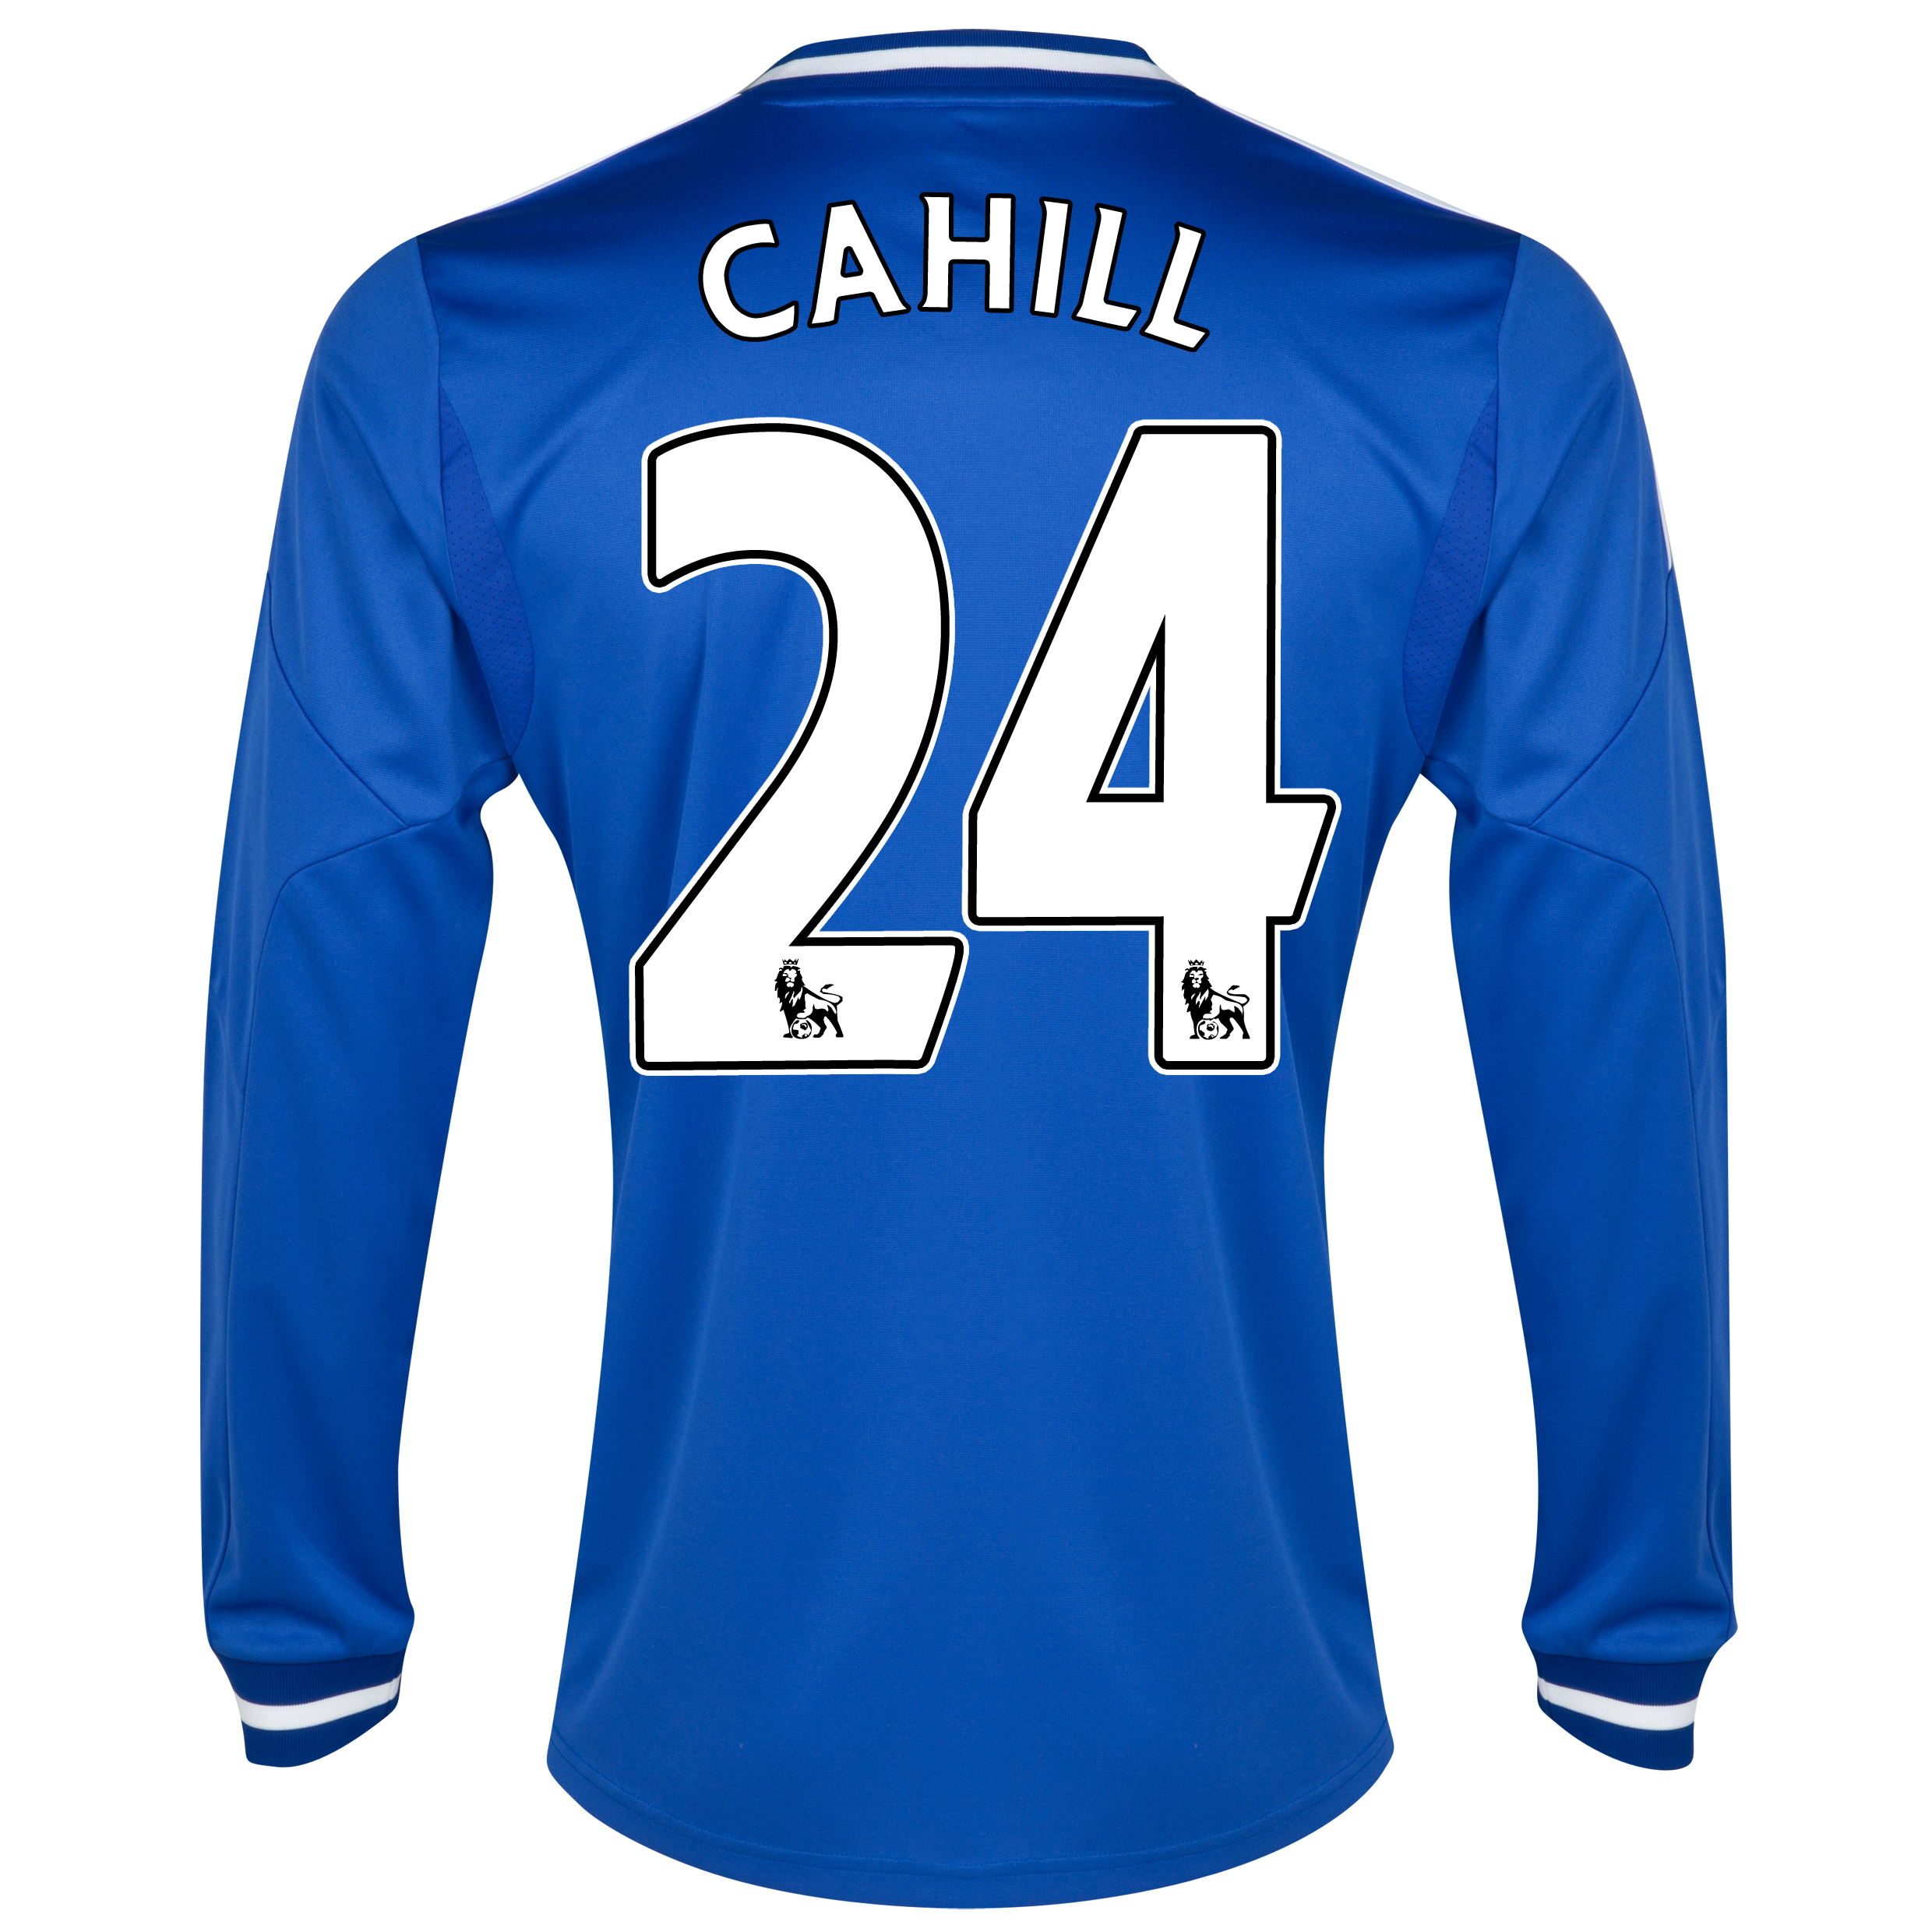 Chelsea Home Shirt 2013/14 - Long Sleeve - Kids with Cahill 24 printing